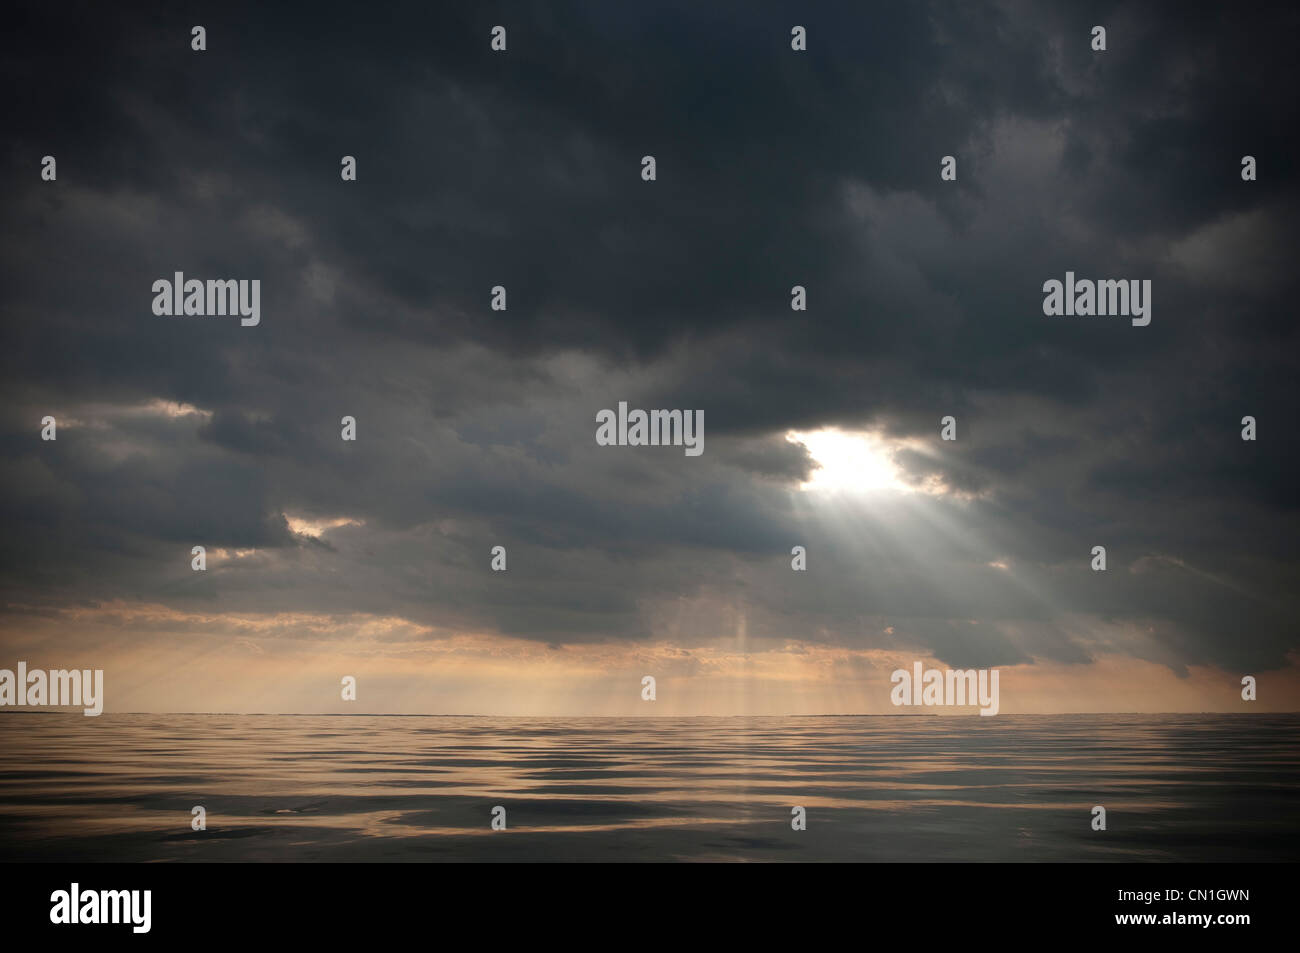 Sunlight Filtering Dramatic Gray Clouds Over Water - Stock Image